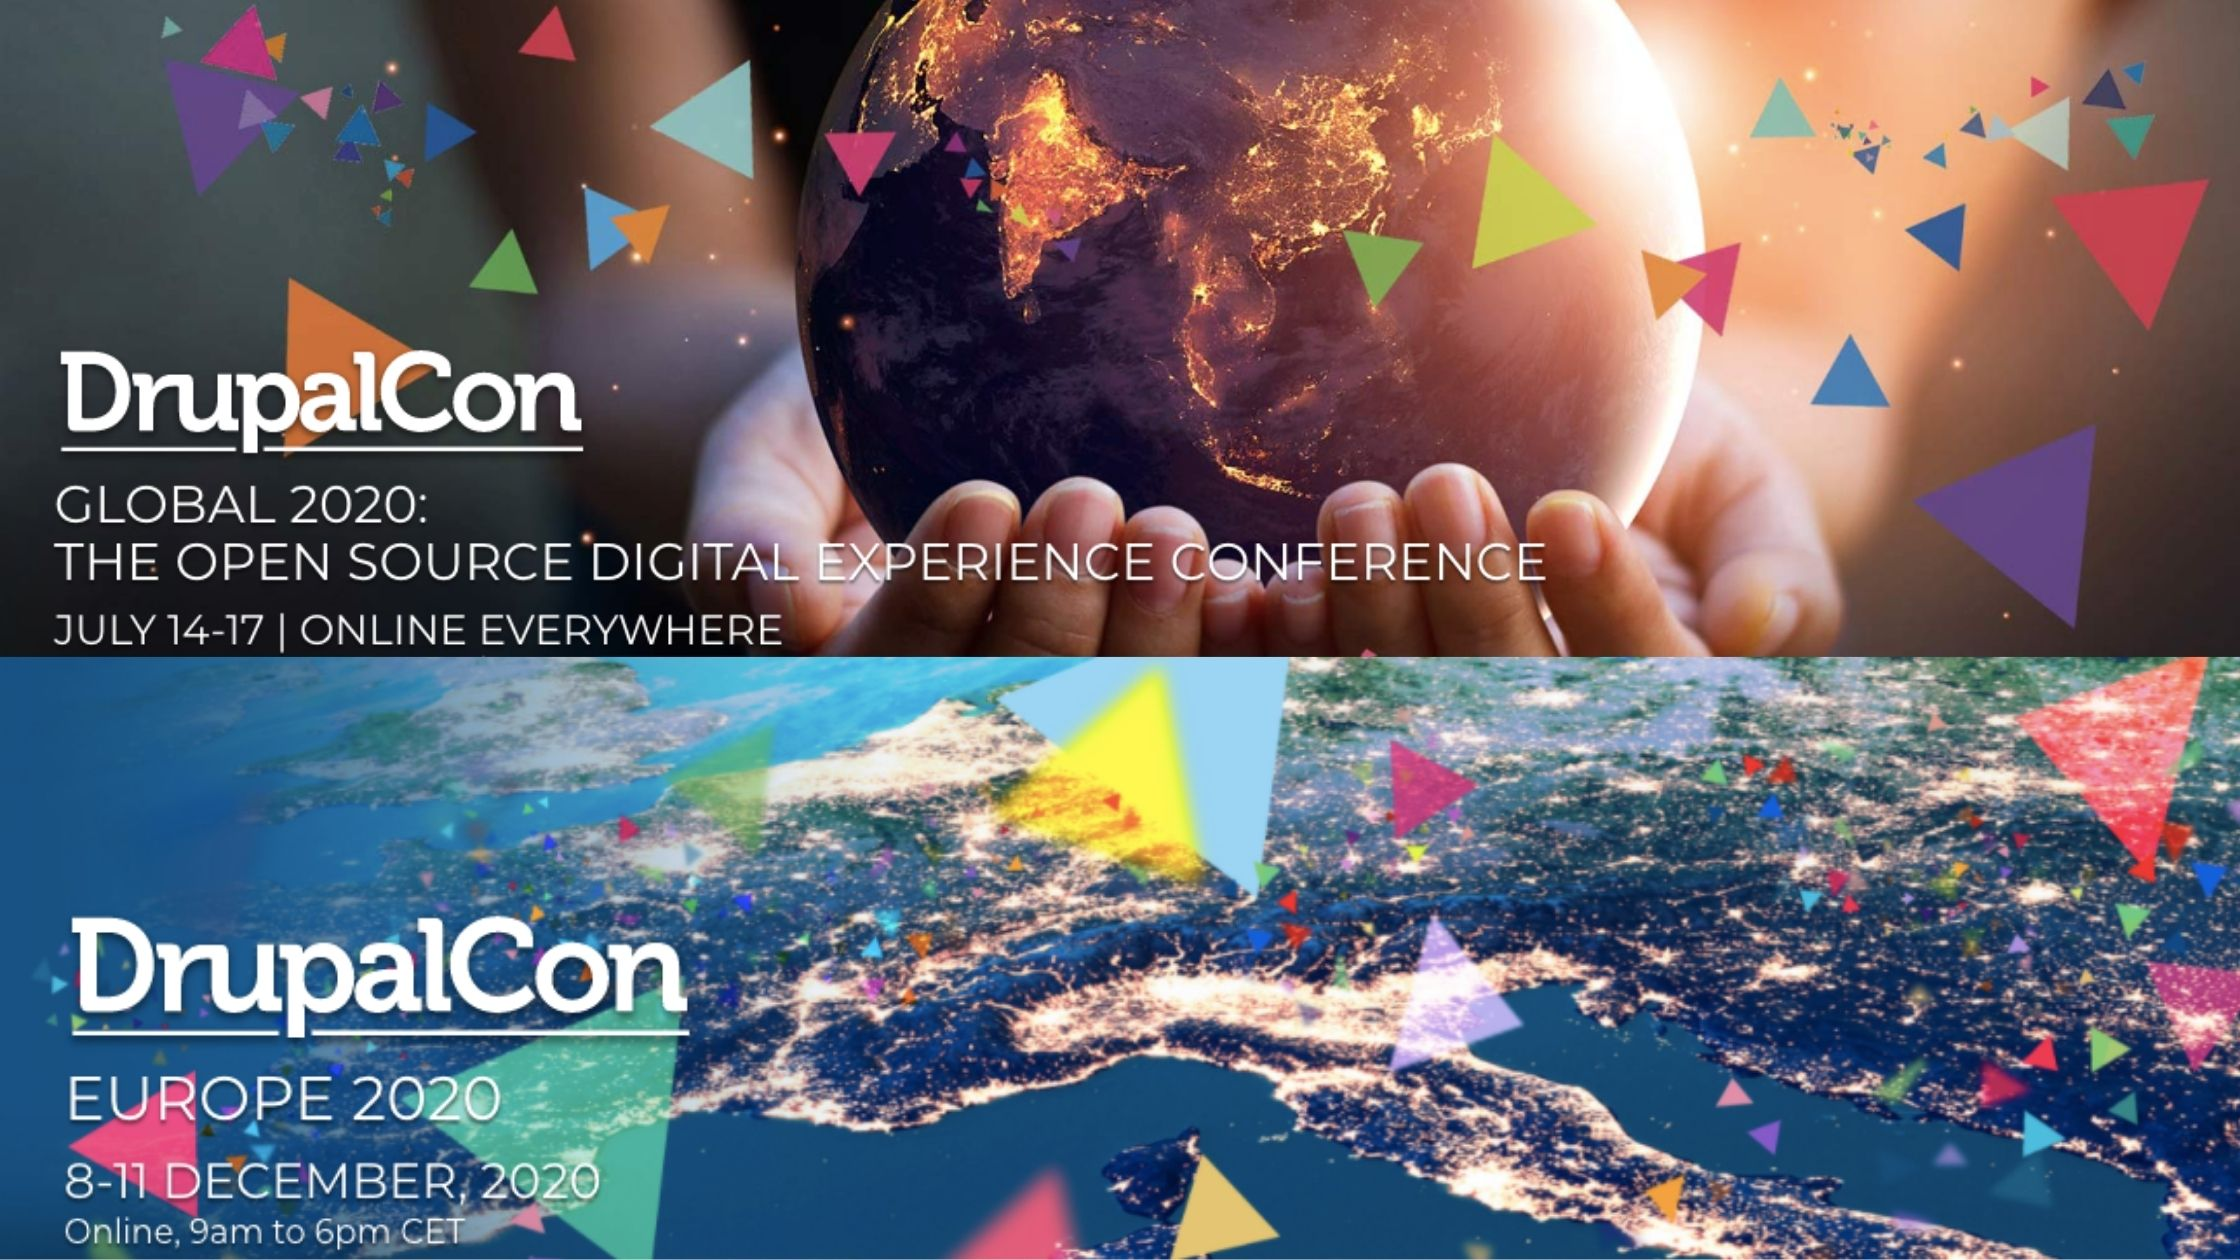 Collage of Screenshots from Drupal 2020 international events like DrupalCon Global 2020 and DrupalCon Europe 2020 homepages with an image of earth on top and buildings at bottom